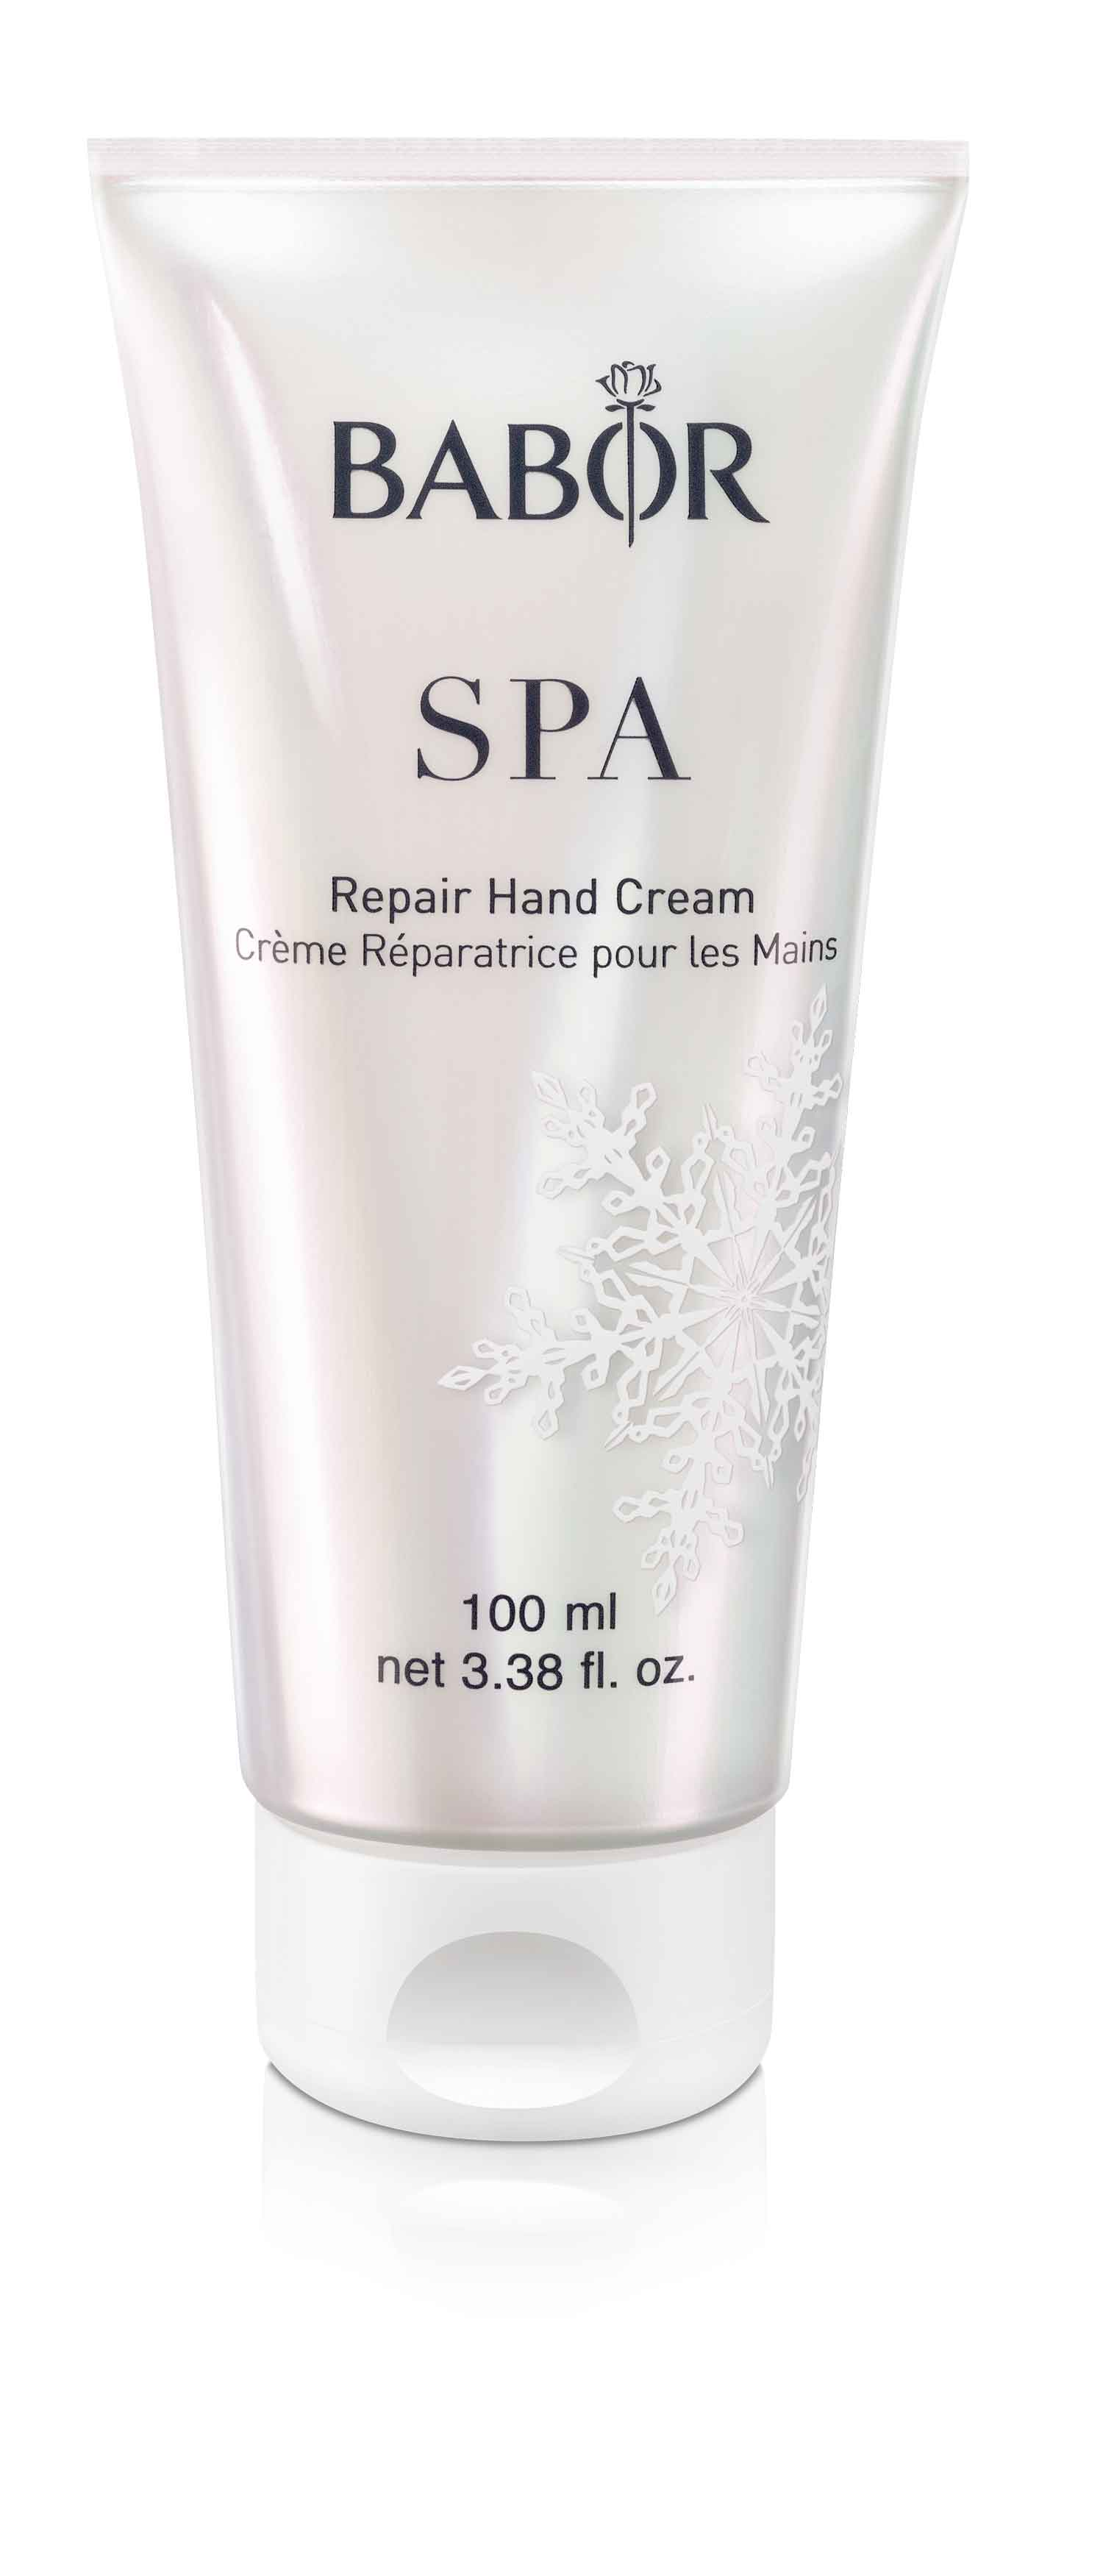 2019 spa repair hand cream